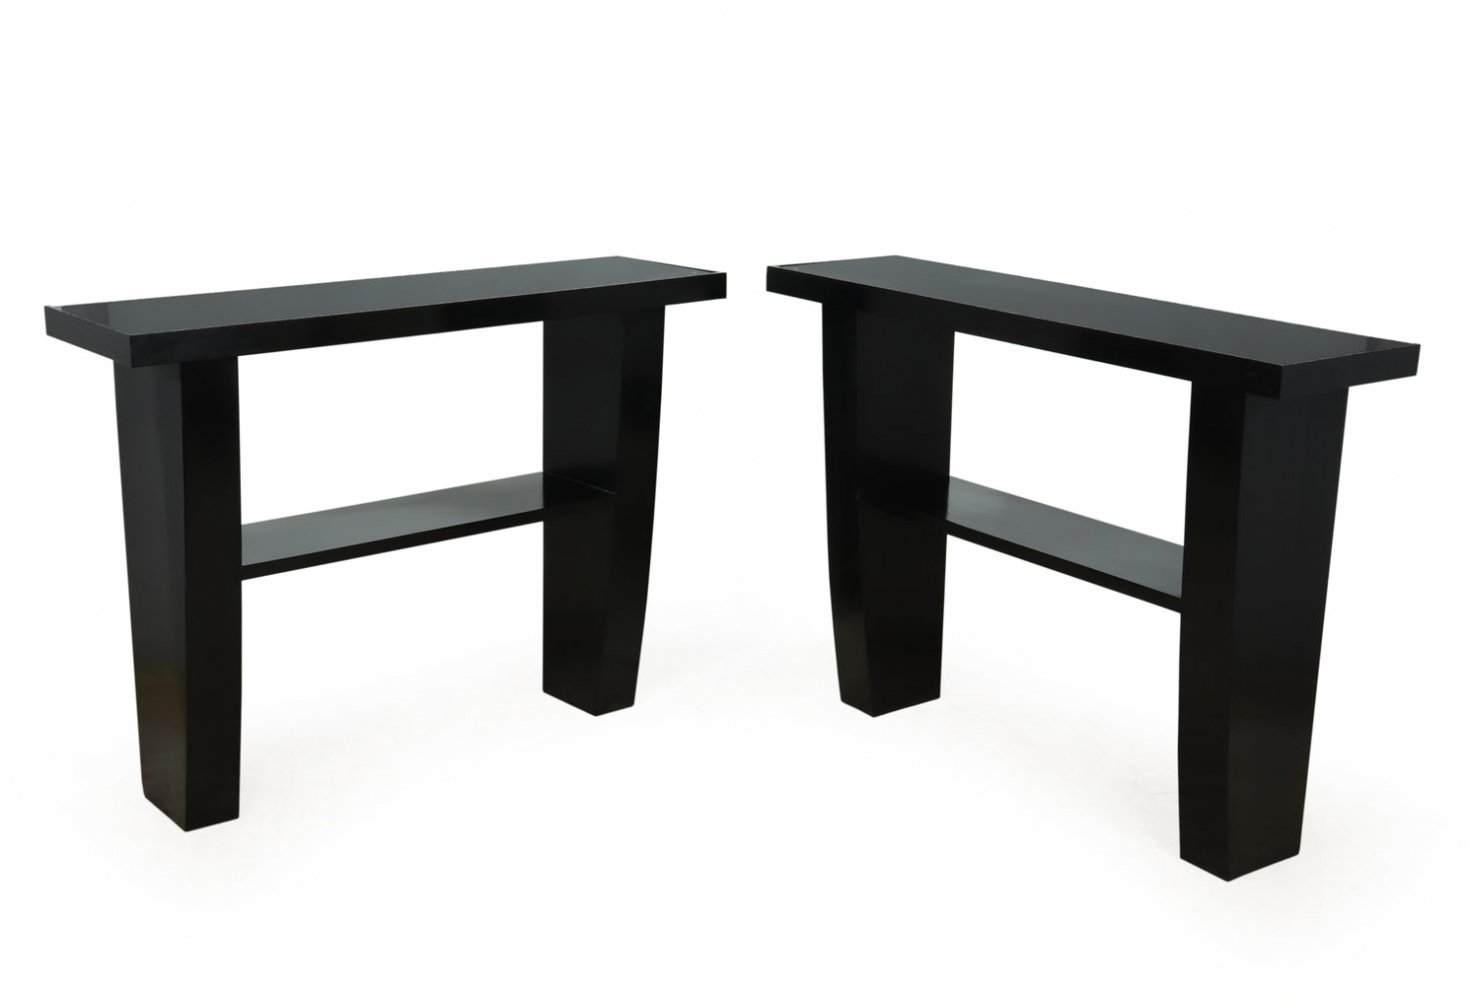 Pair of Art Deco Console Tables in Piano Black Lacquer